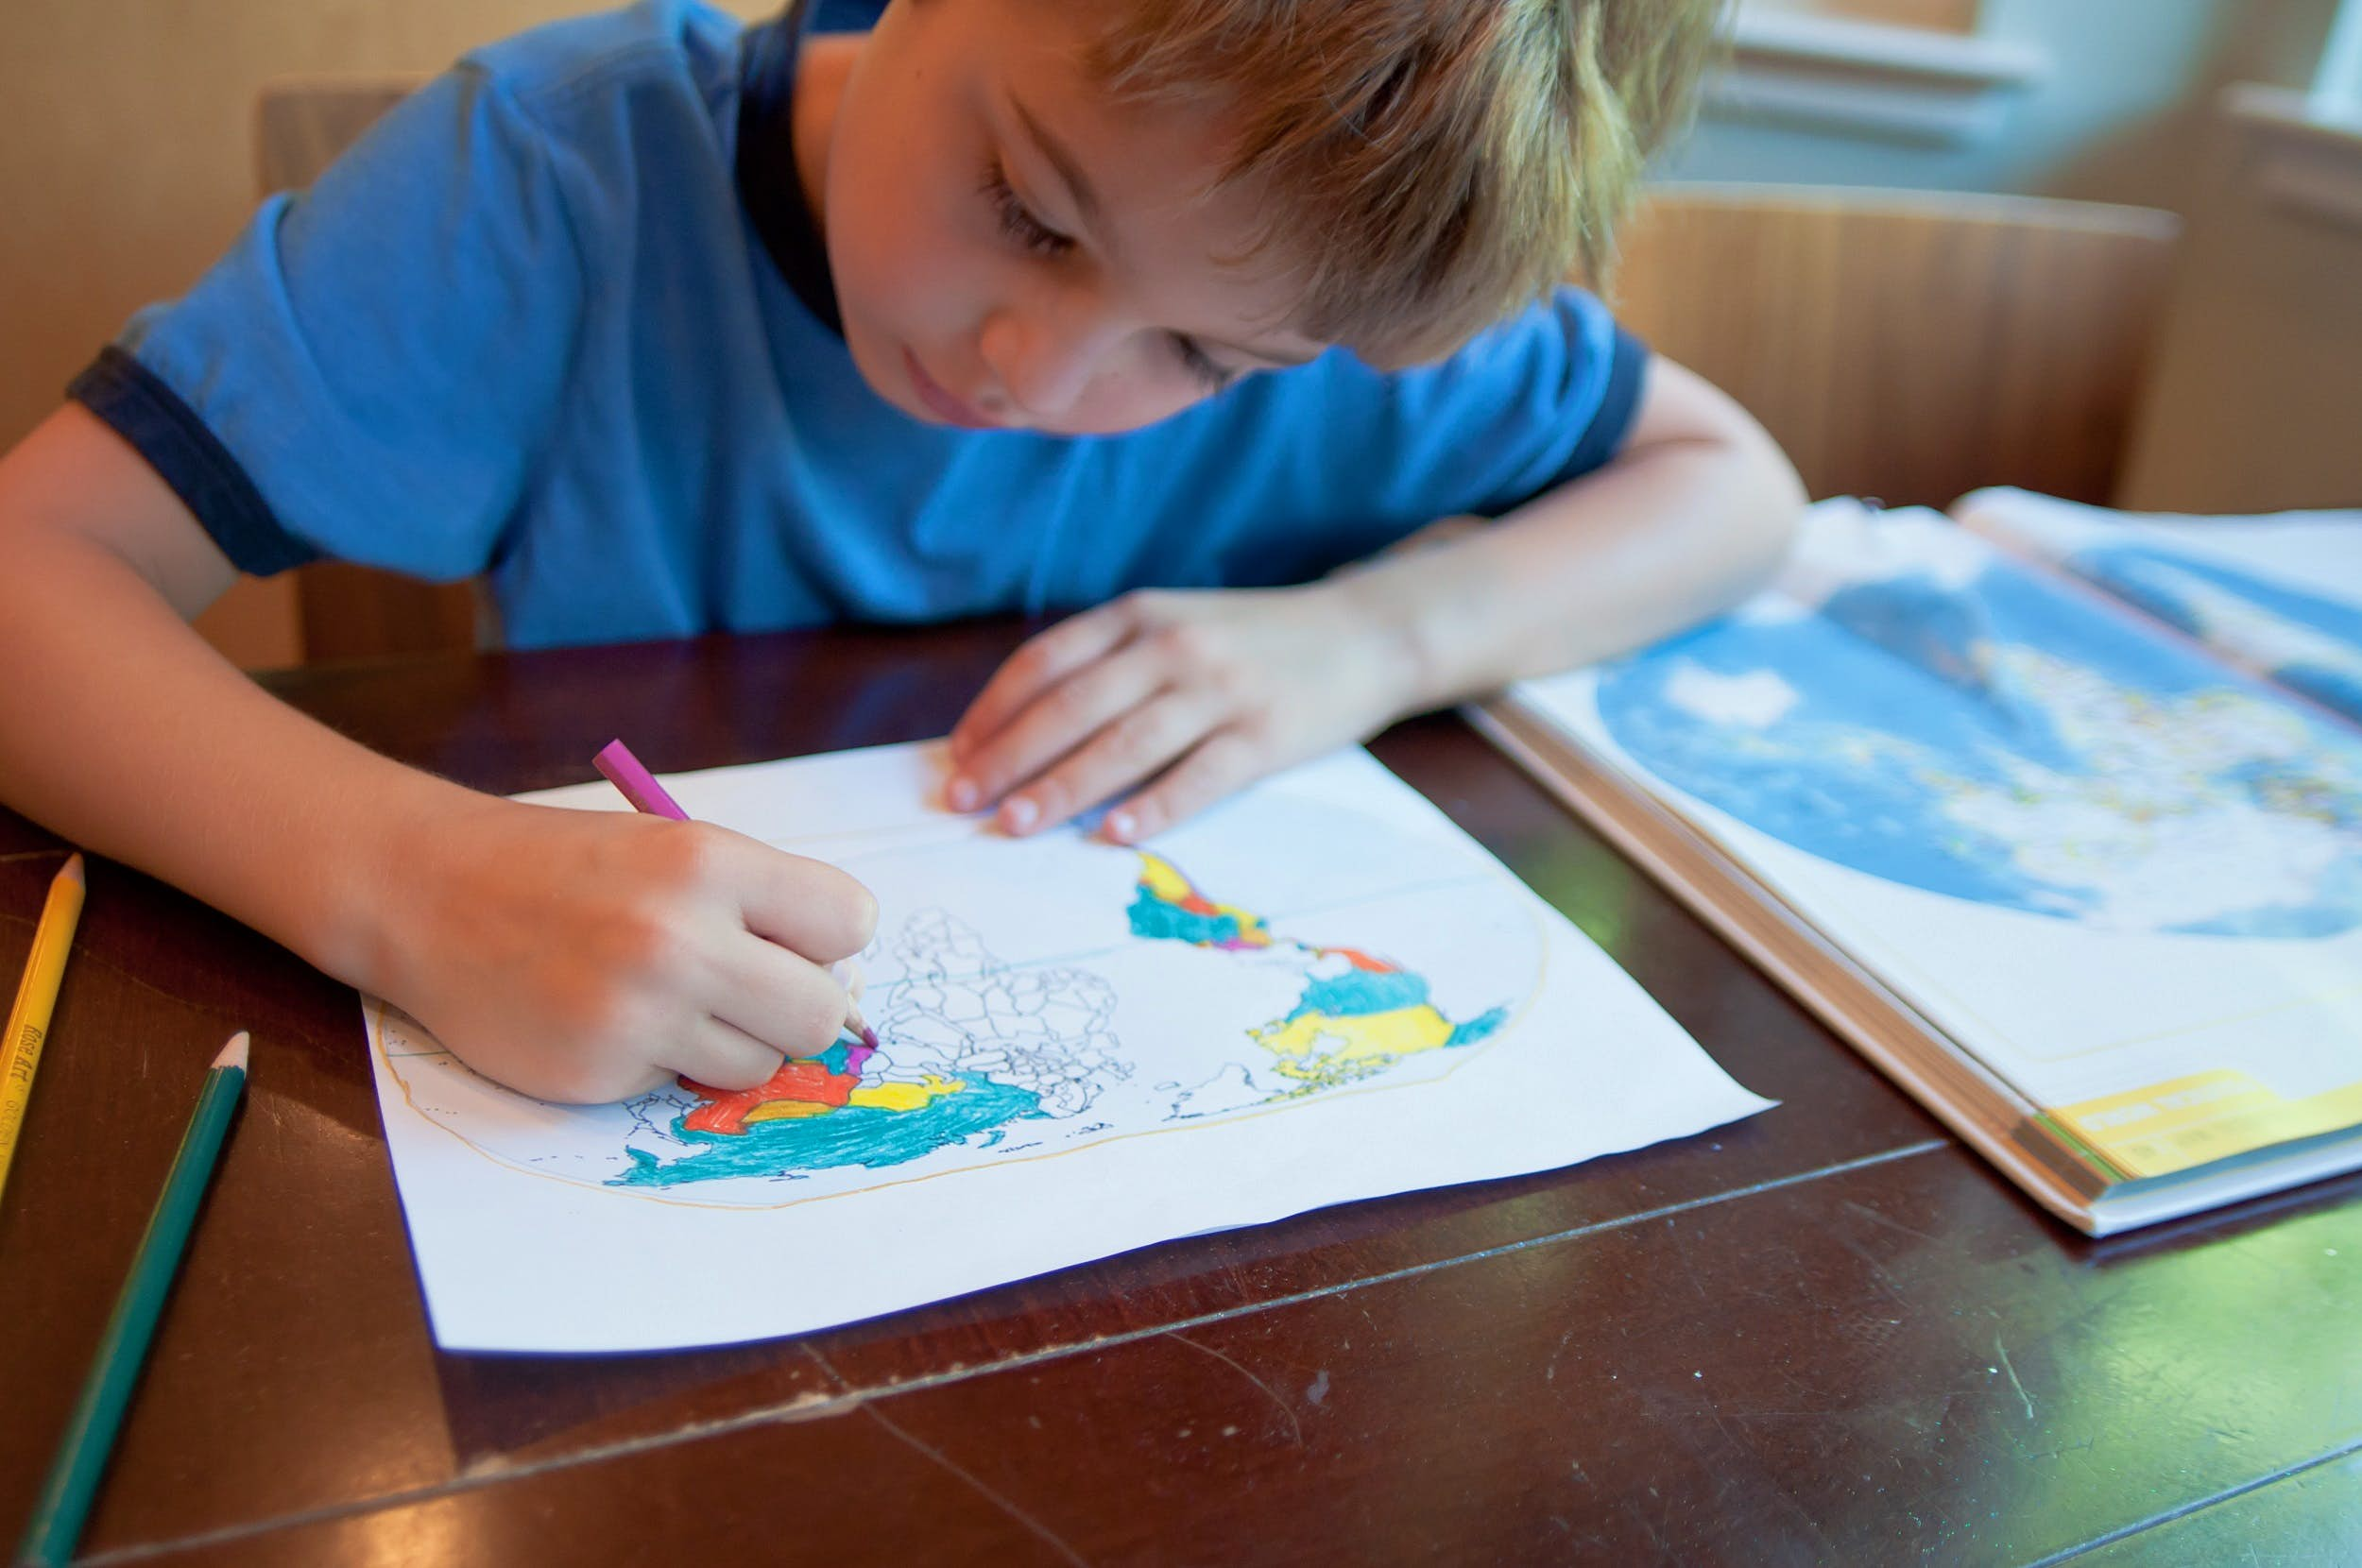 A young boy leans over his world map that he's colouring in. Next to him is an open atlas